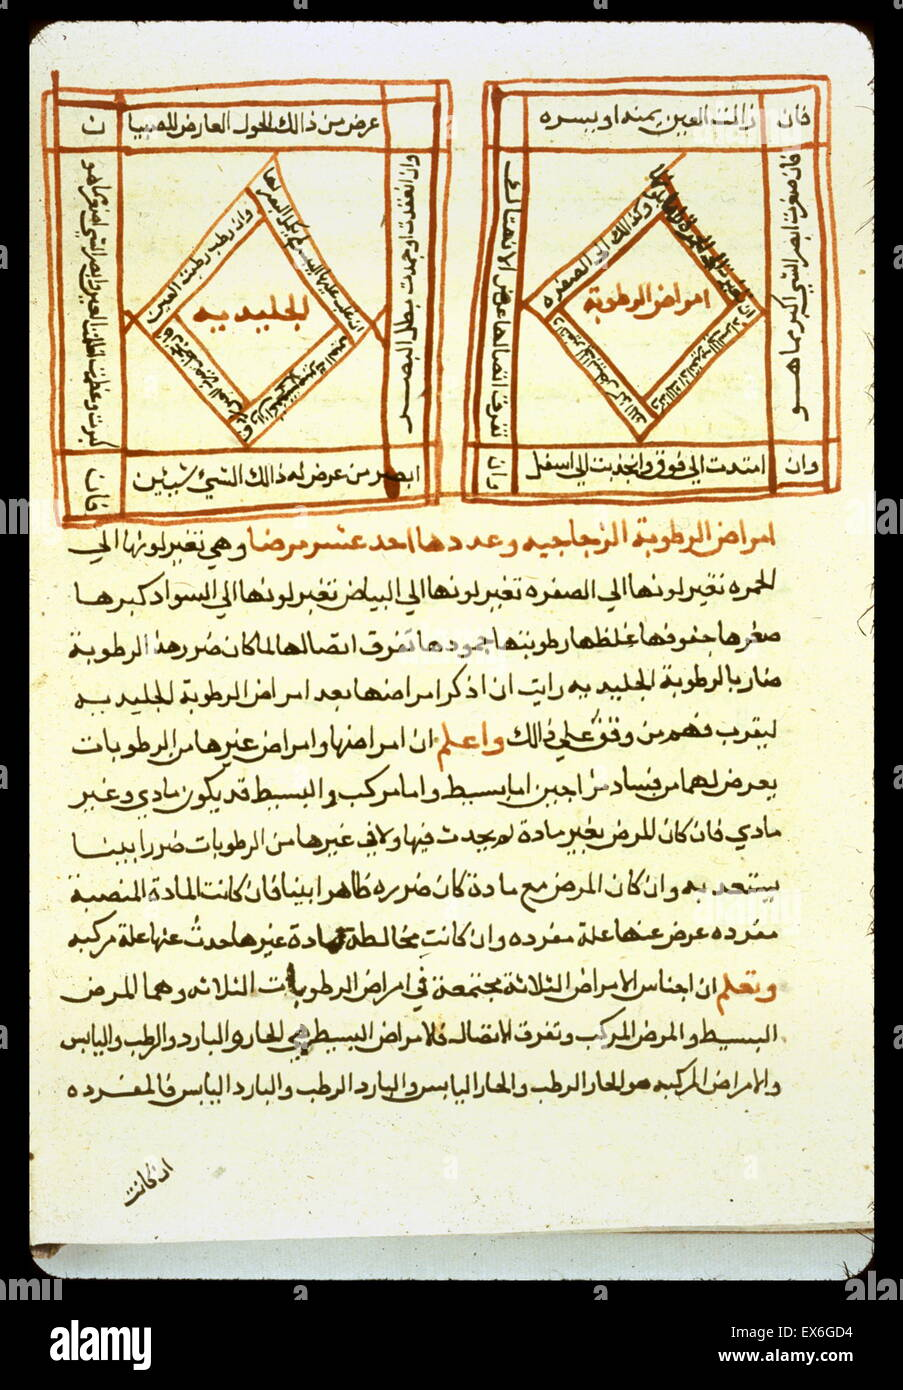 Visual acuity diagrams from the ophthalmological manual written in Egypt toward the end of the 14th century by ?adaqah - Stock Image